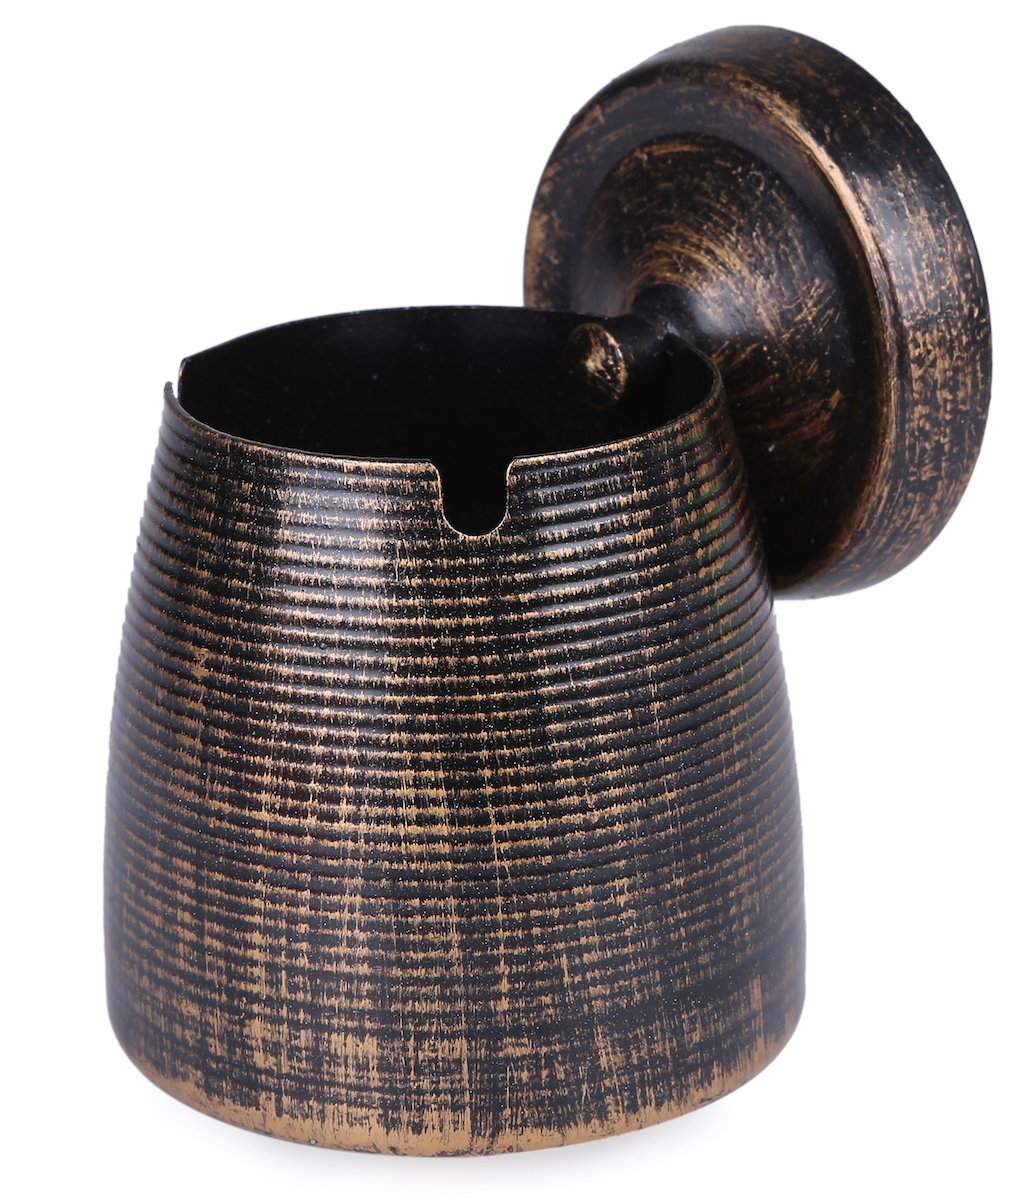 LOTUS LIFE Ashtray with lid stainless steel outdoor indoor Copper Brown (Medium) GNO JAPAN ldt